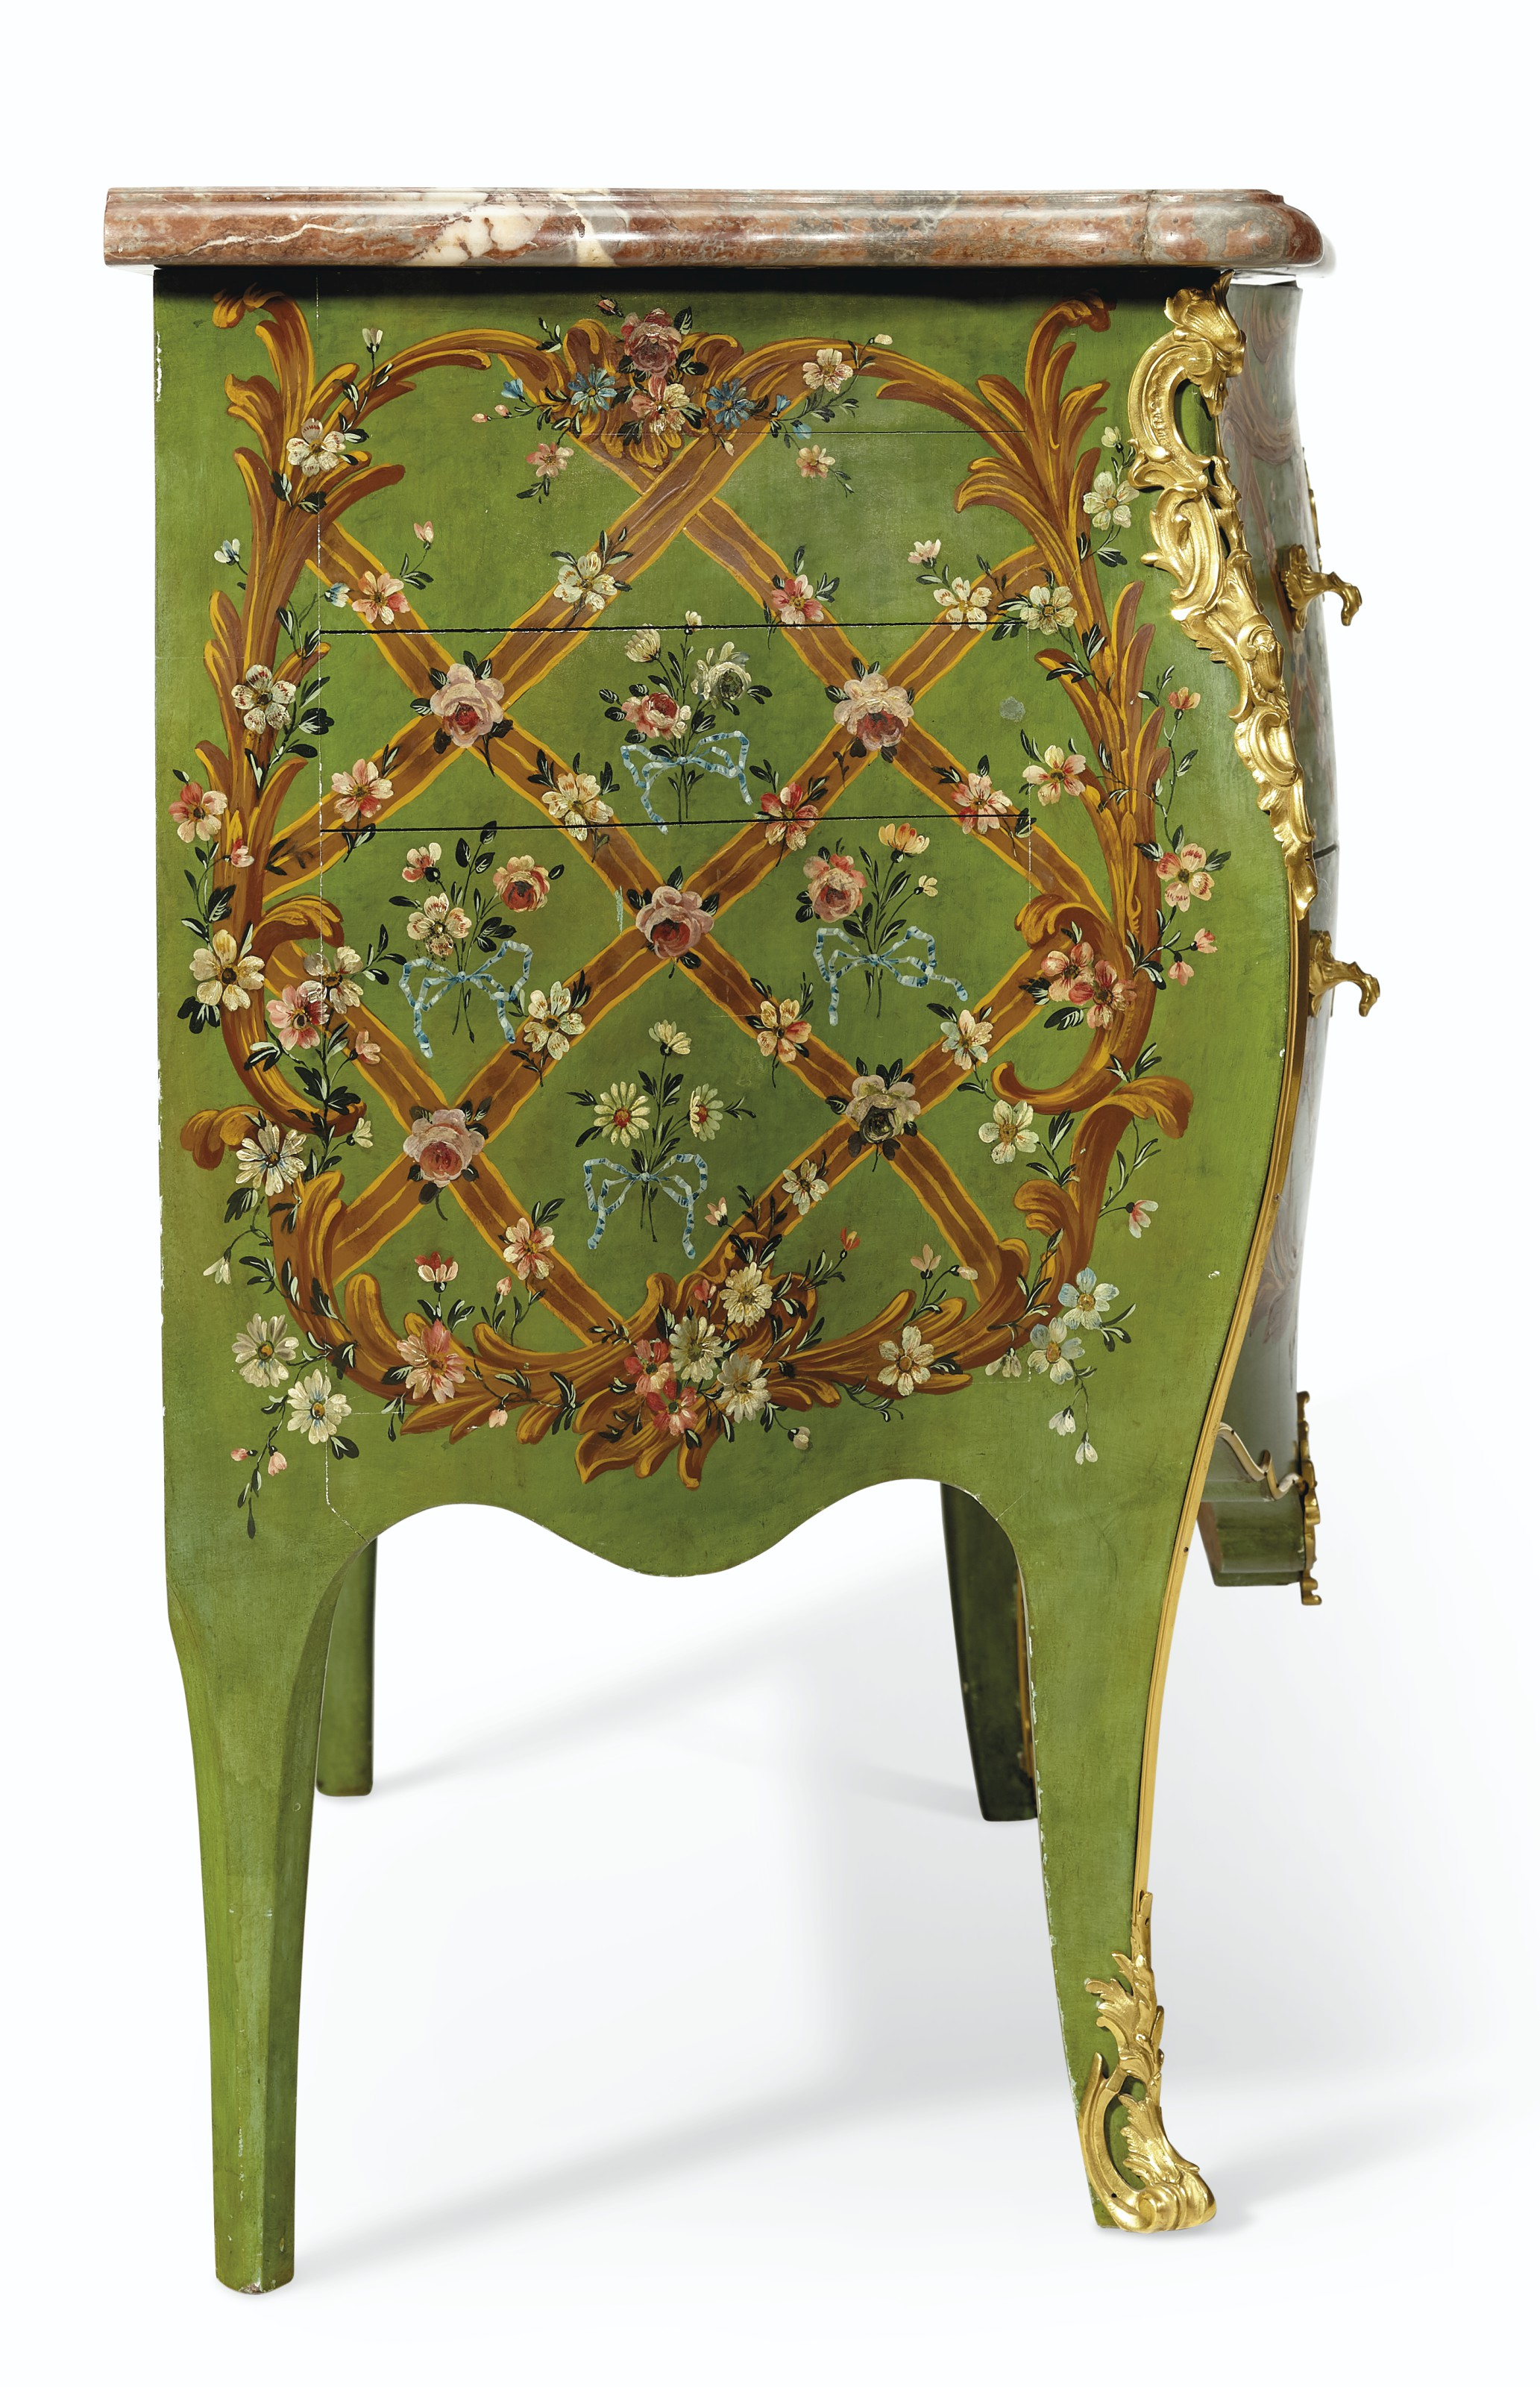 A FRENCH ORMOLU-MOUNTED GREEN AND POLYCHROME-PAINTED VERNIS MARTIN COMMODE